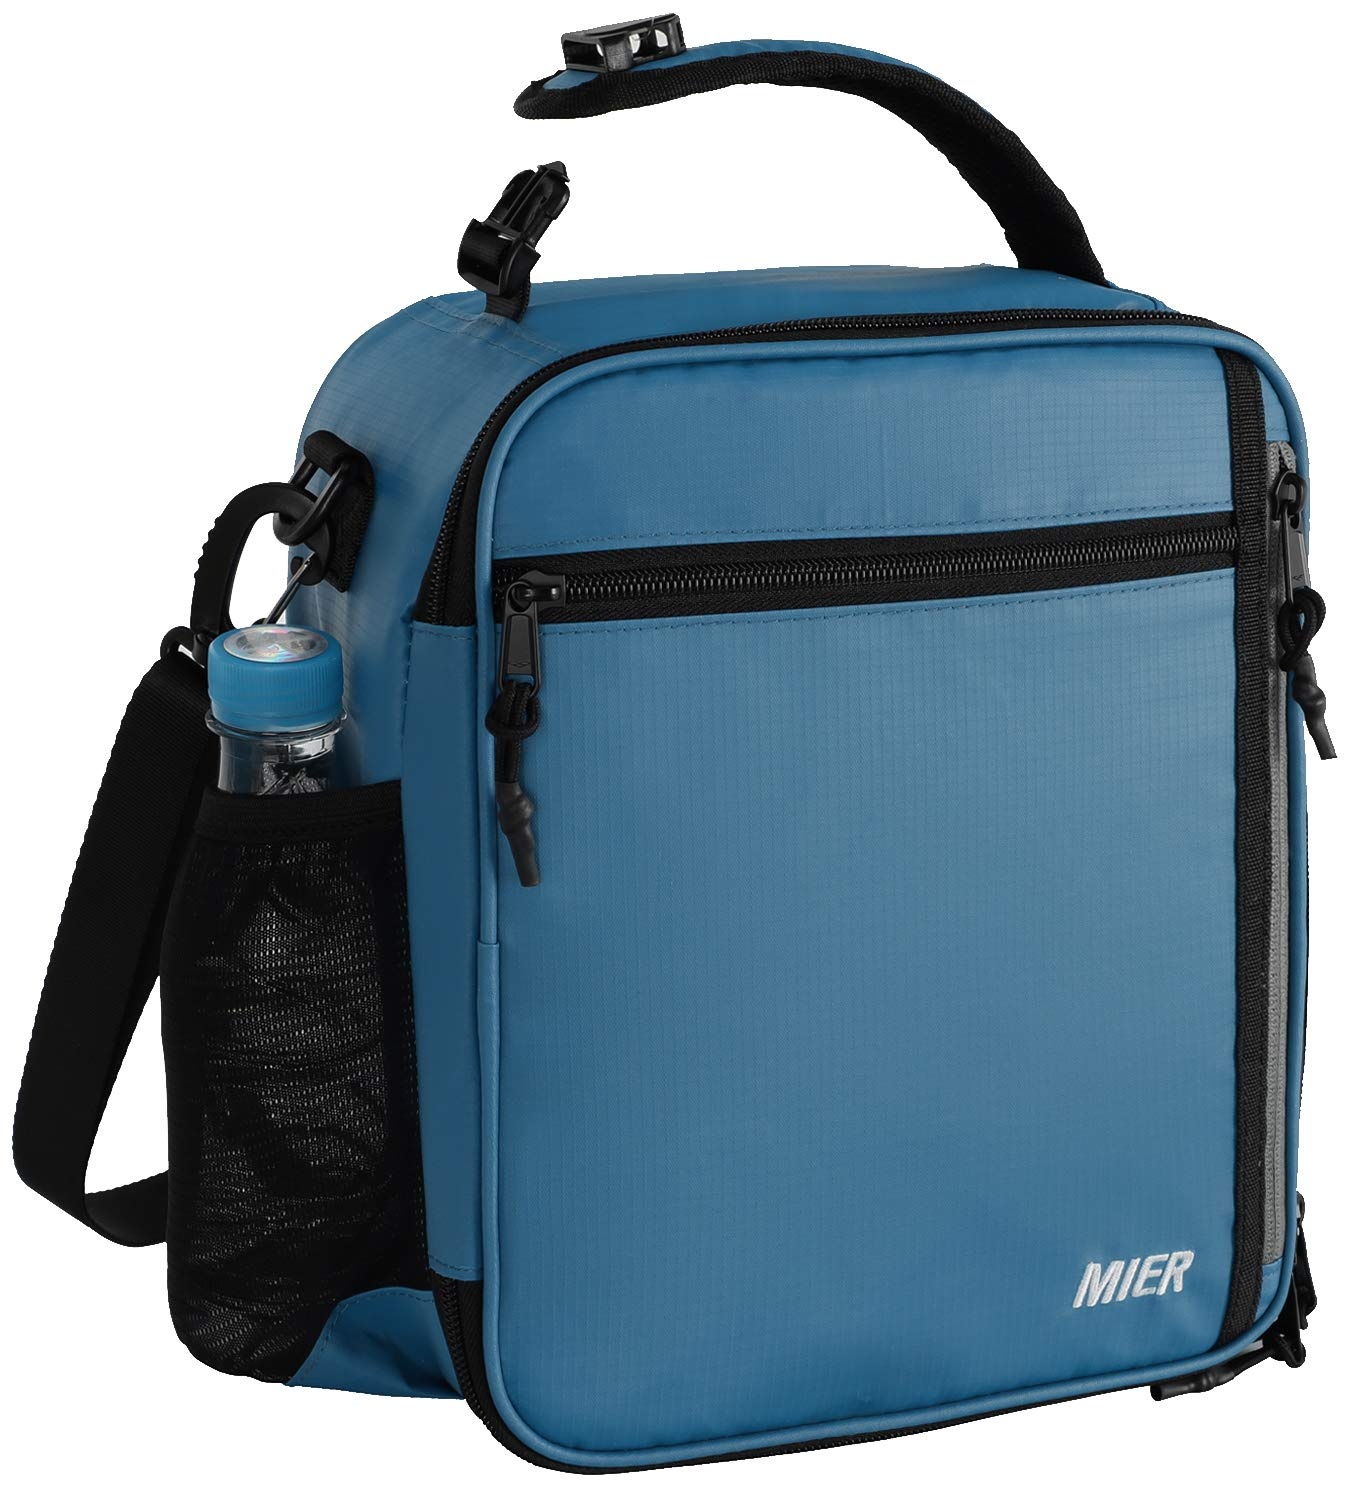 MIER Insulated Lunch Box Bag for Men Women Adult Teen Children, Lunch Cooler Bag with Shoulder Strap and Bottle Holder, 12 Can, Blue